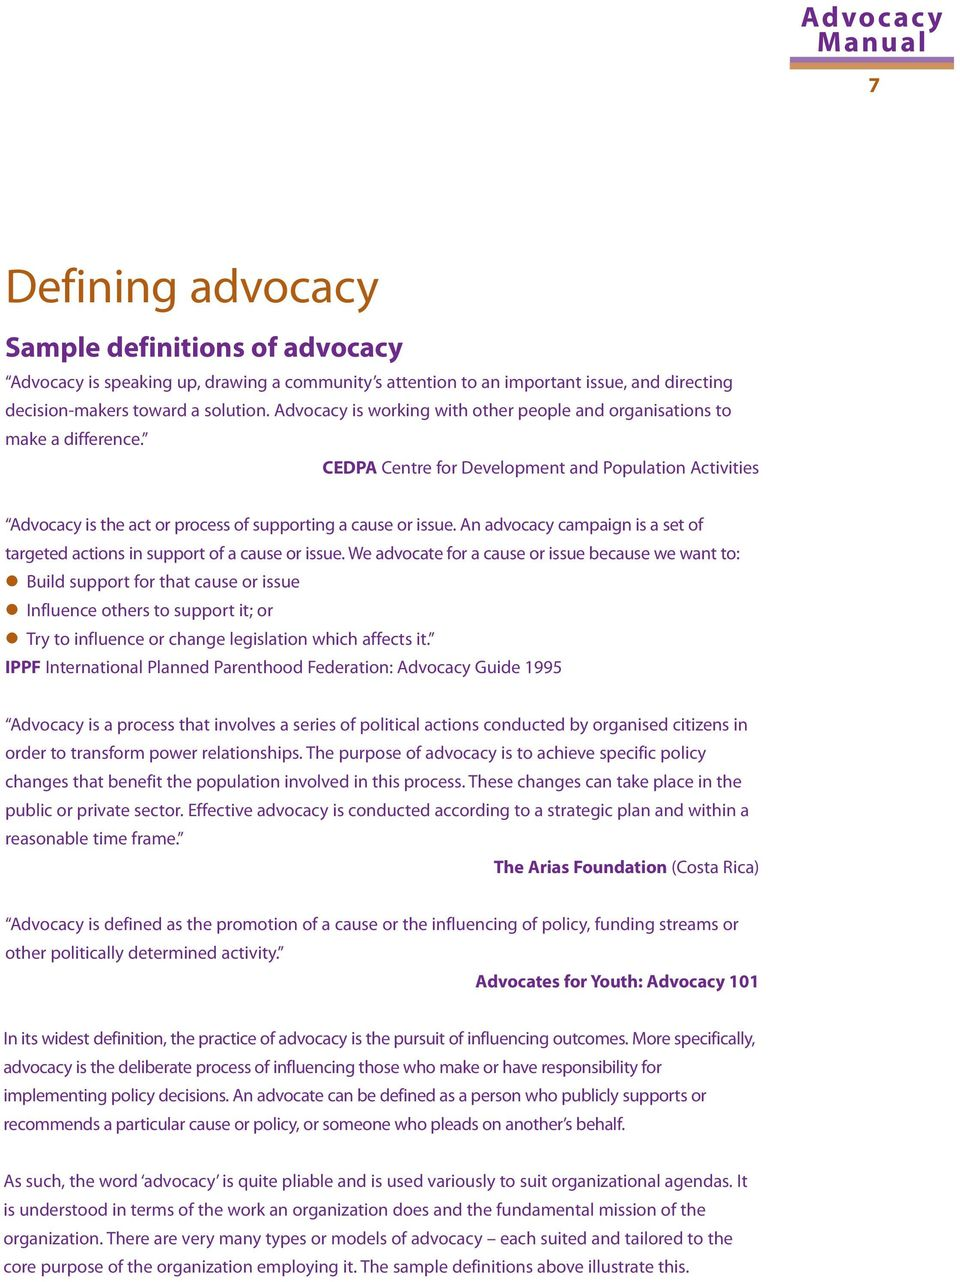 An advocacy campaign is a set of targeted actions in support of a cause or issue.